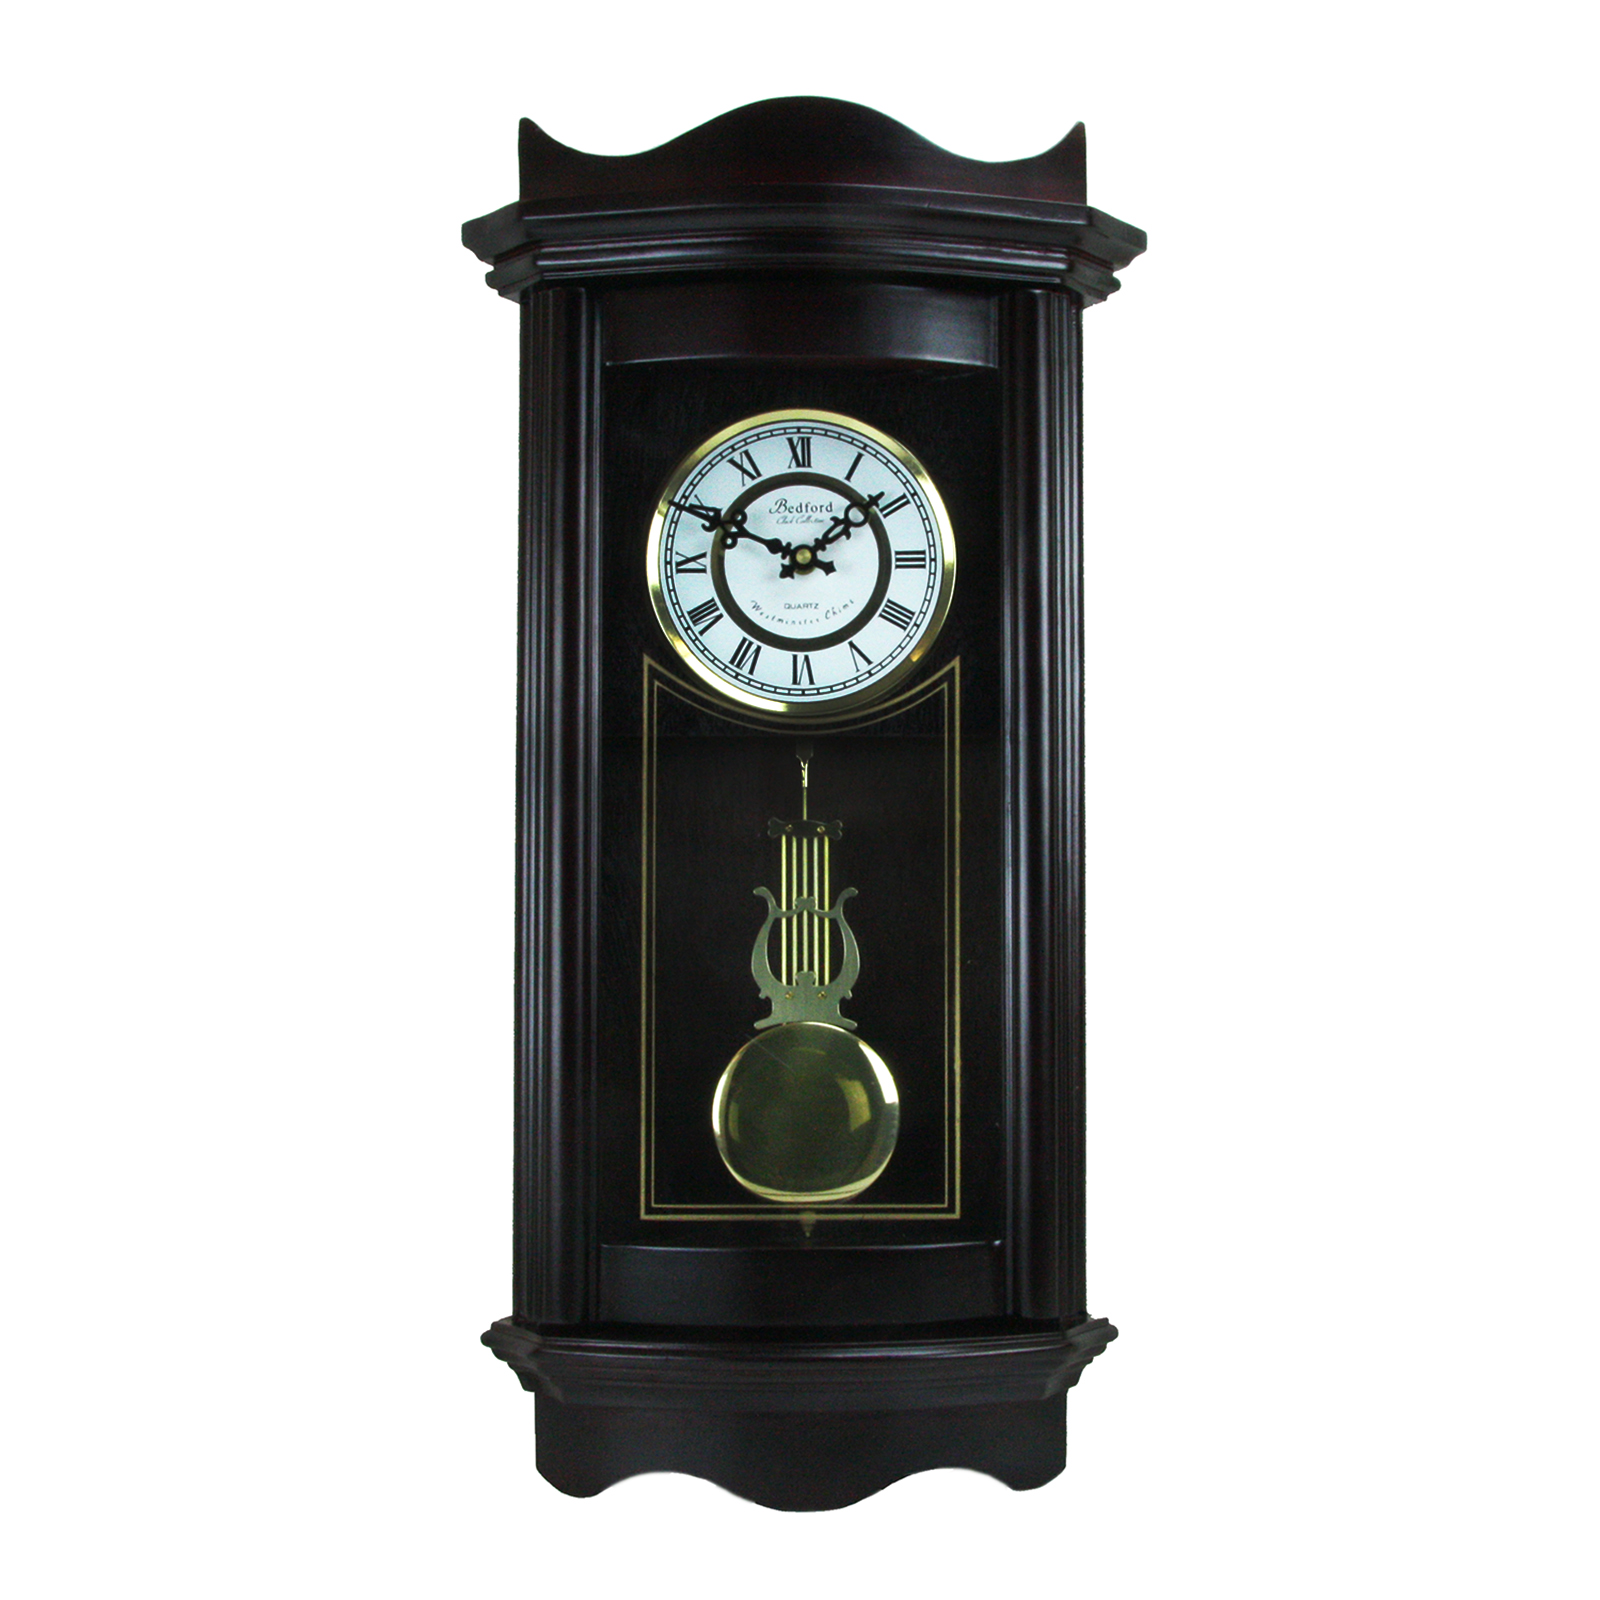 "Bedford Clock Collection Weathered Chocolate Cherry Wood 25"" Wall Clock with Pendulum by Bedford Clock Collection"